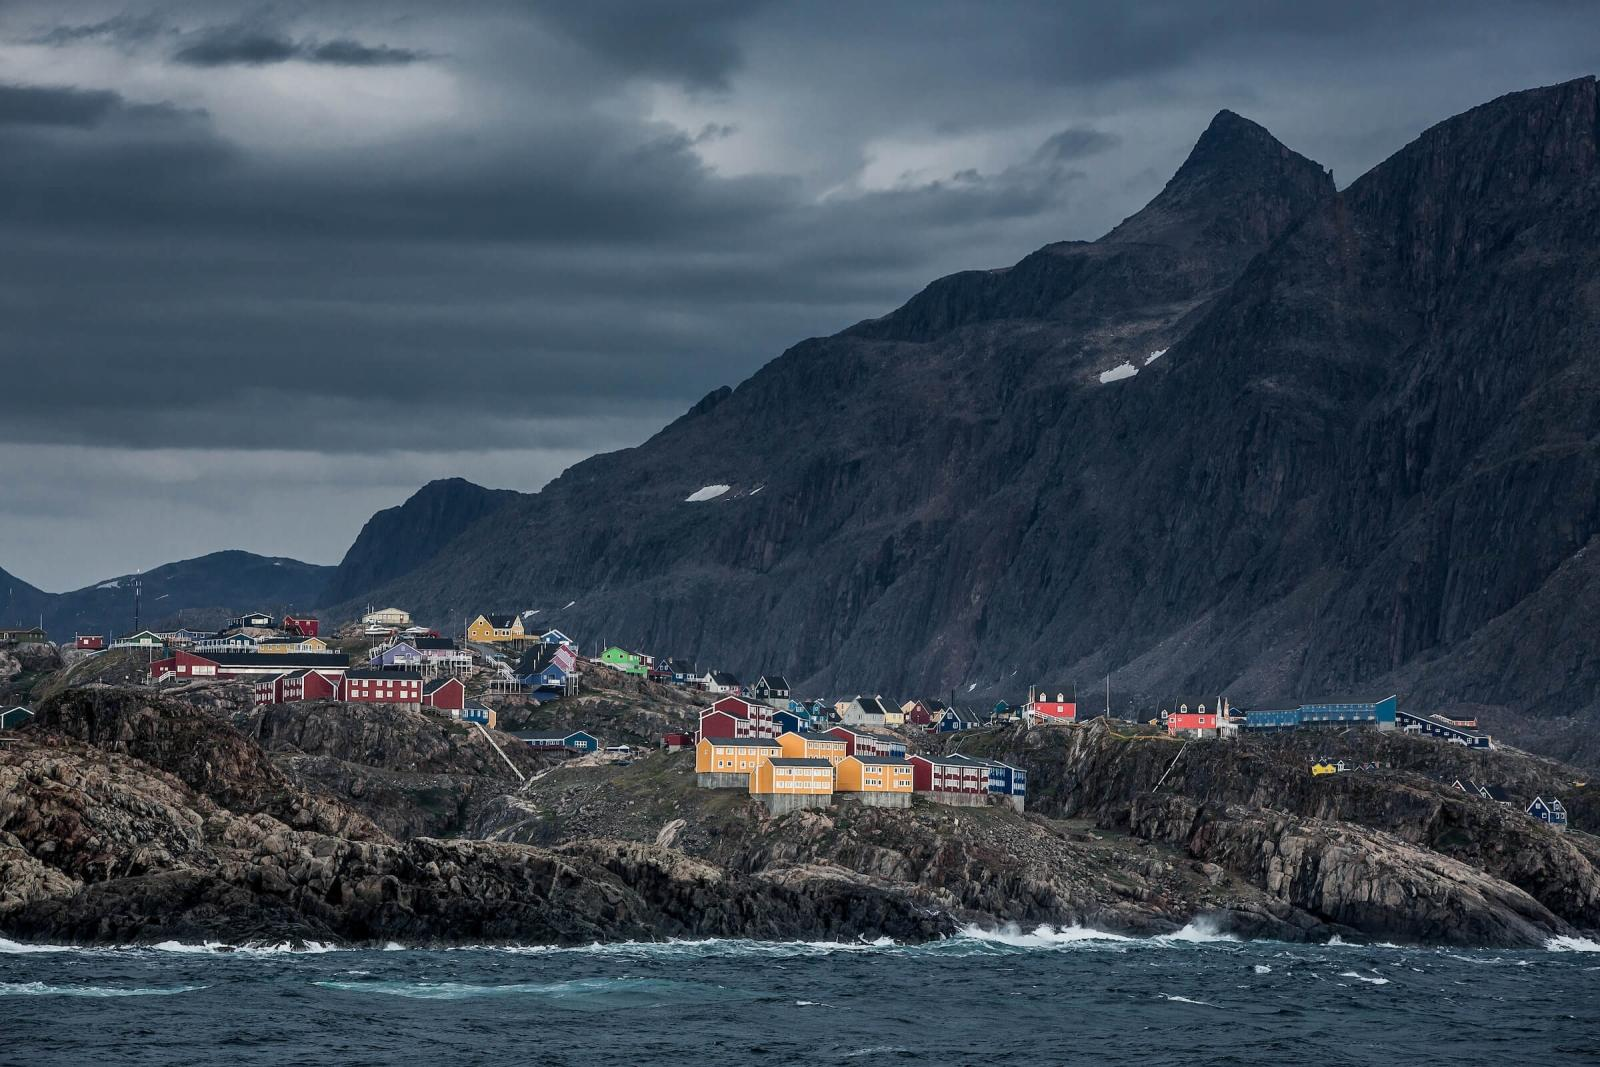 A windy and cloudy day in Sisimiut in Greenland